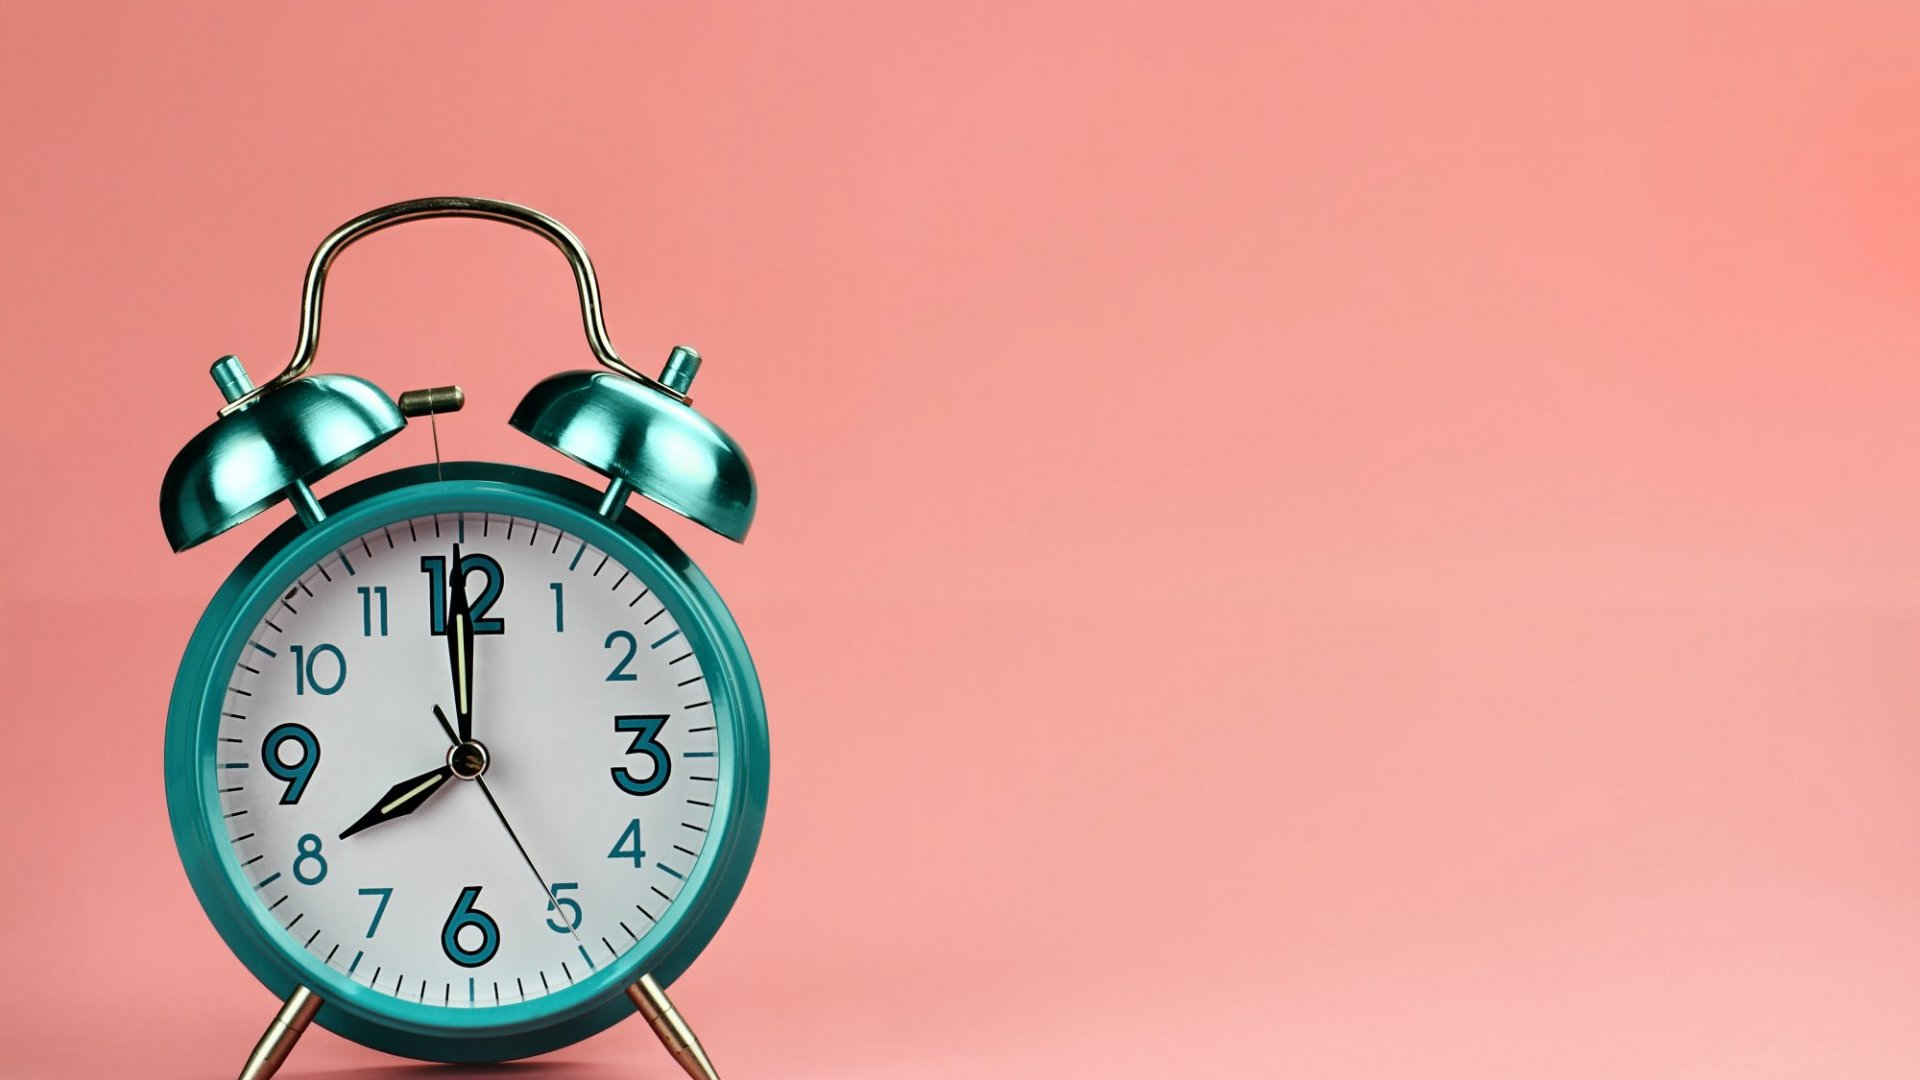 The Painless Way to Add an Extra Hour to Every Day (It's Really Easy, But You Have to Do It This Weekend)